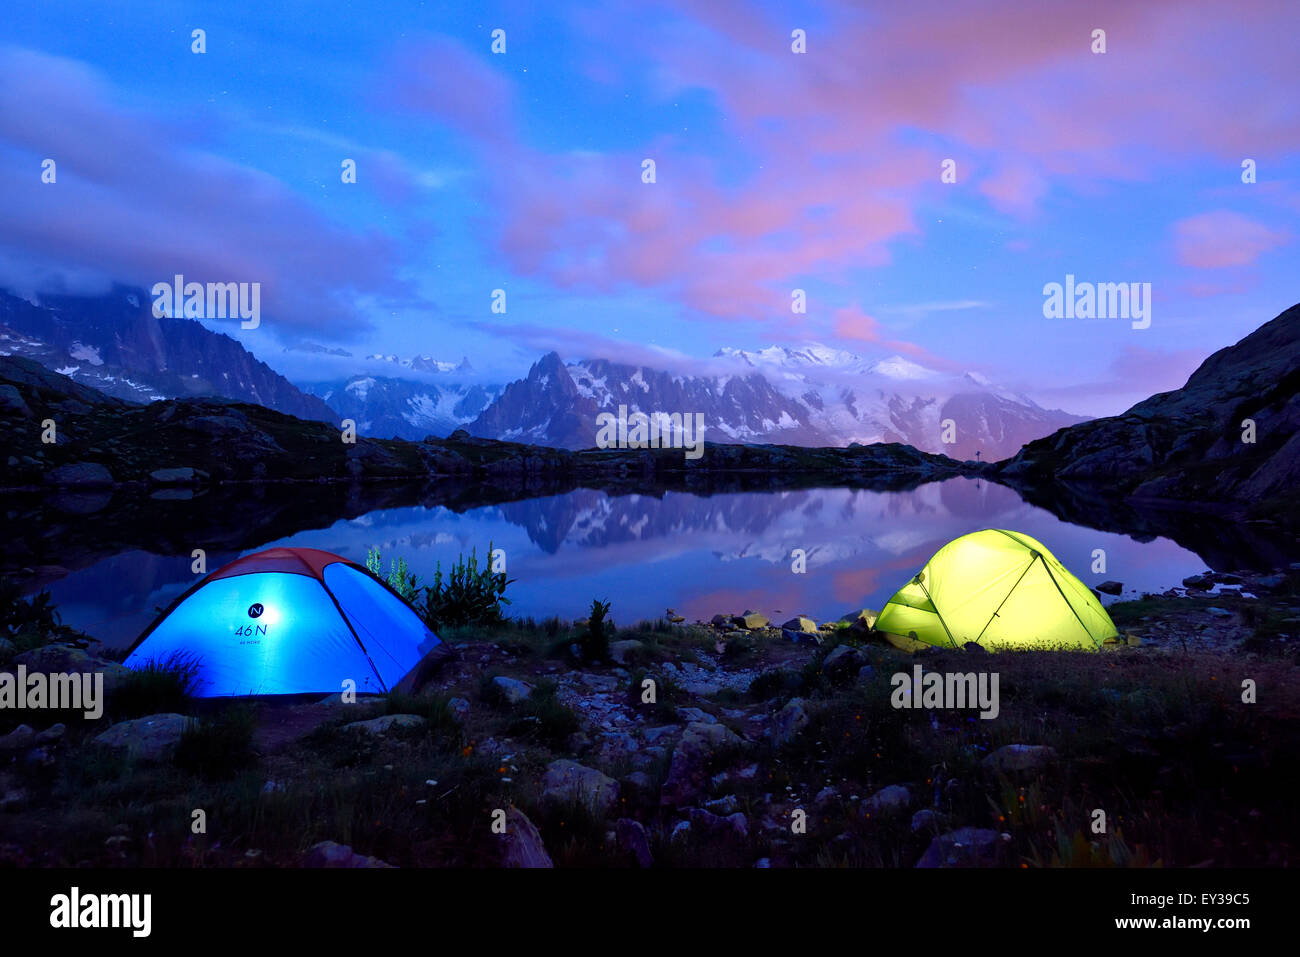 Mont Blanc massif at night reflected in Lac de Chésserys two lighted tents at the front Chamonix France & Mont Blanc massif at night reflected in Lac de Chésserys two ...